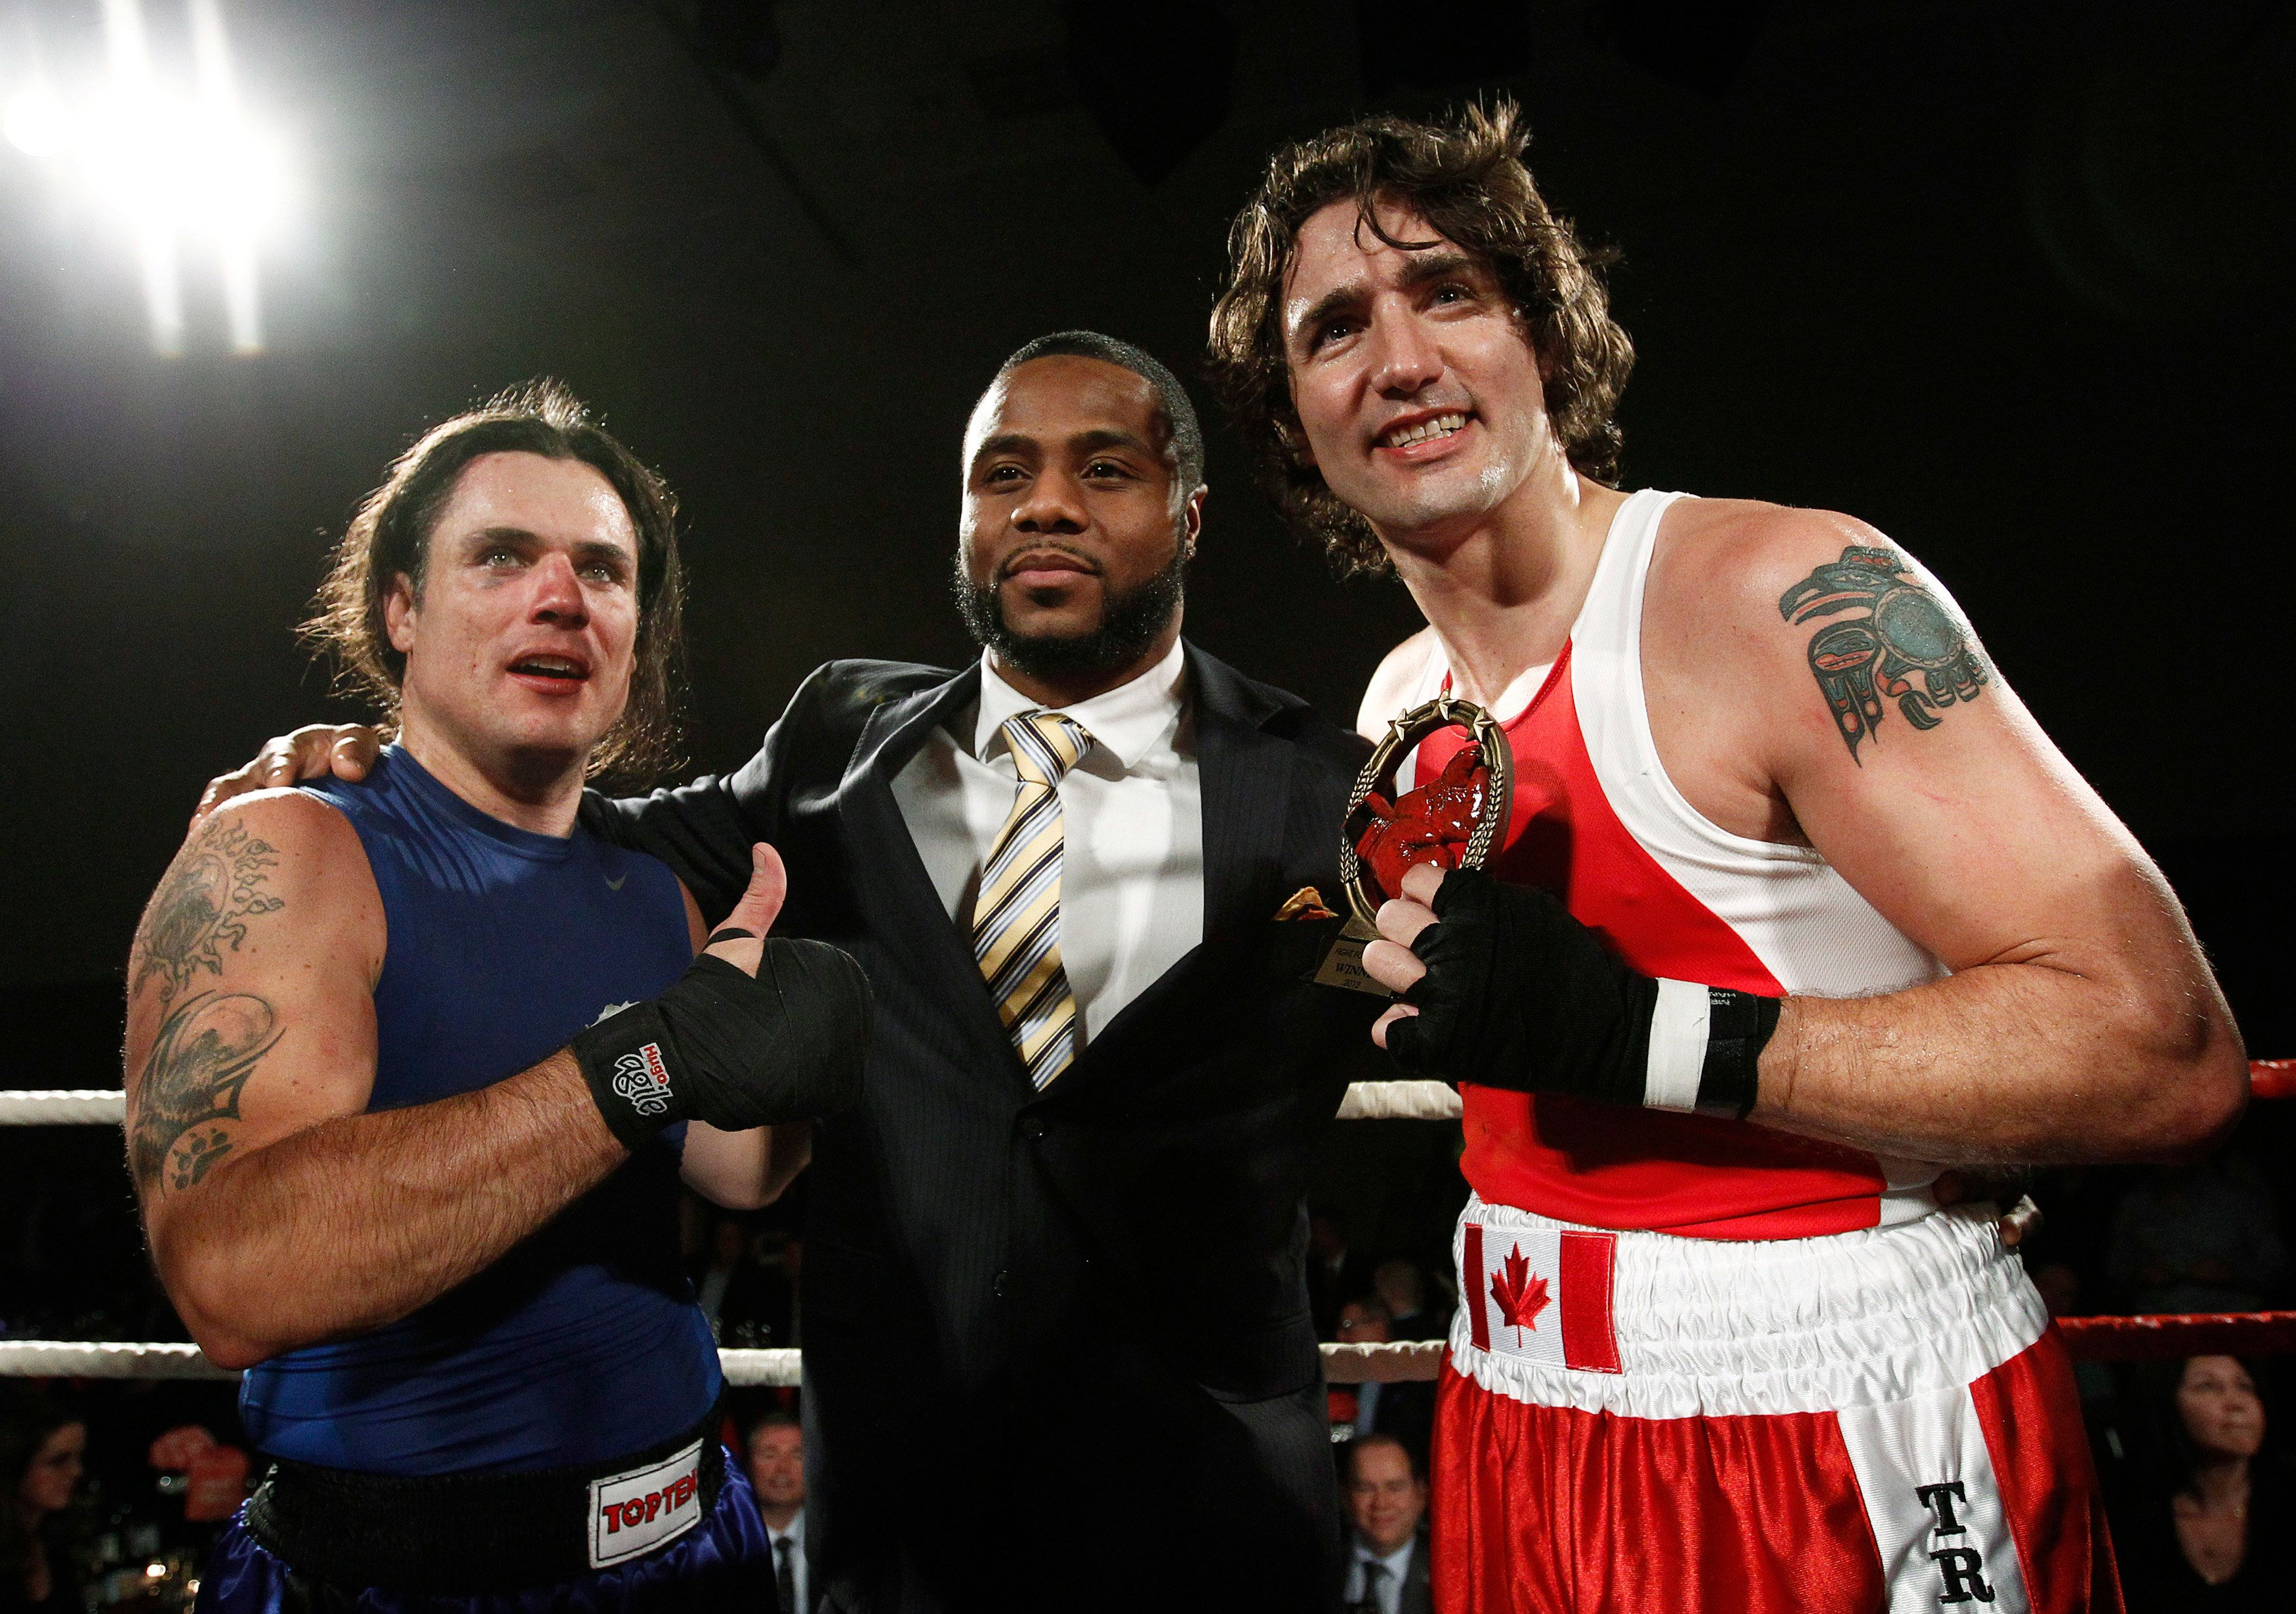 The Meaning Behind Canadian Prime Minister Justin Trudeau's